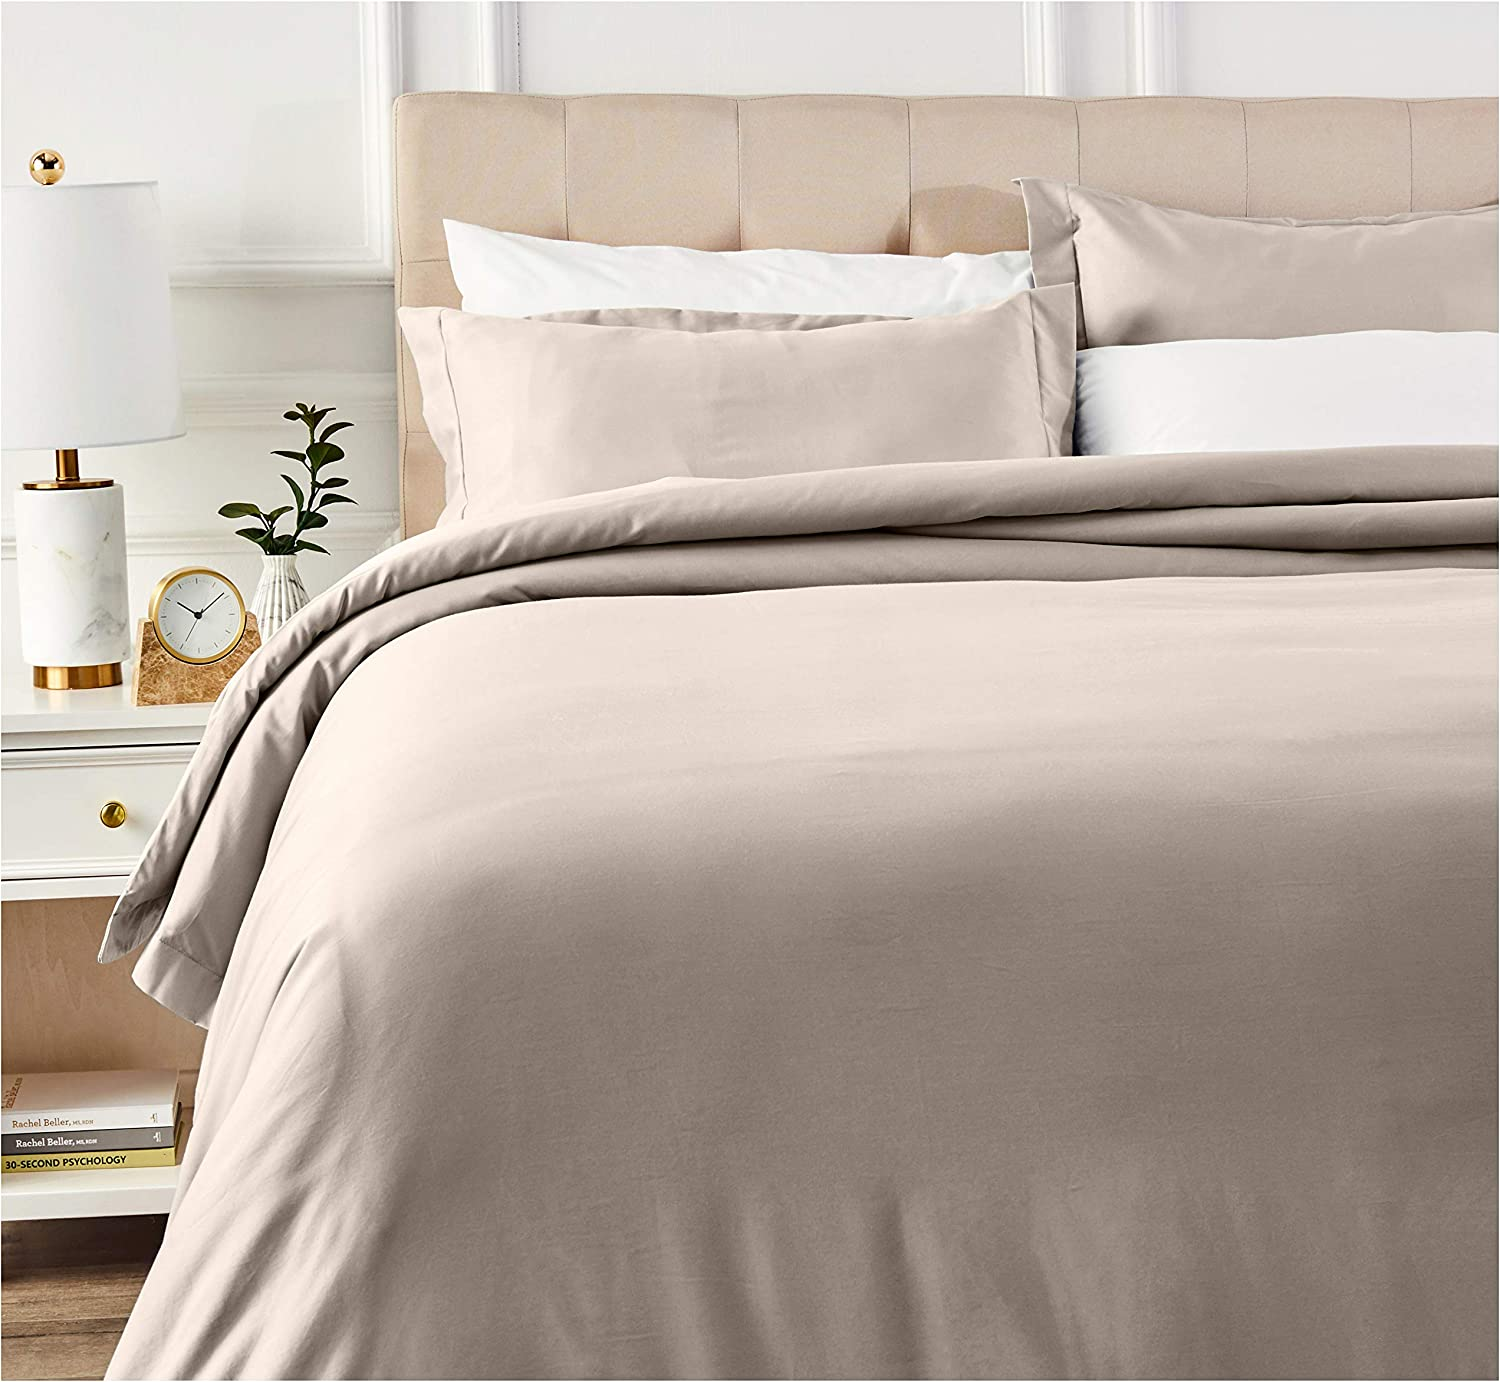 AmazonBasics 400 Thread Count Cotton Duvet Cover Set with Sateen Finish - Full/Queen, Stone Grey